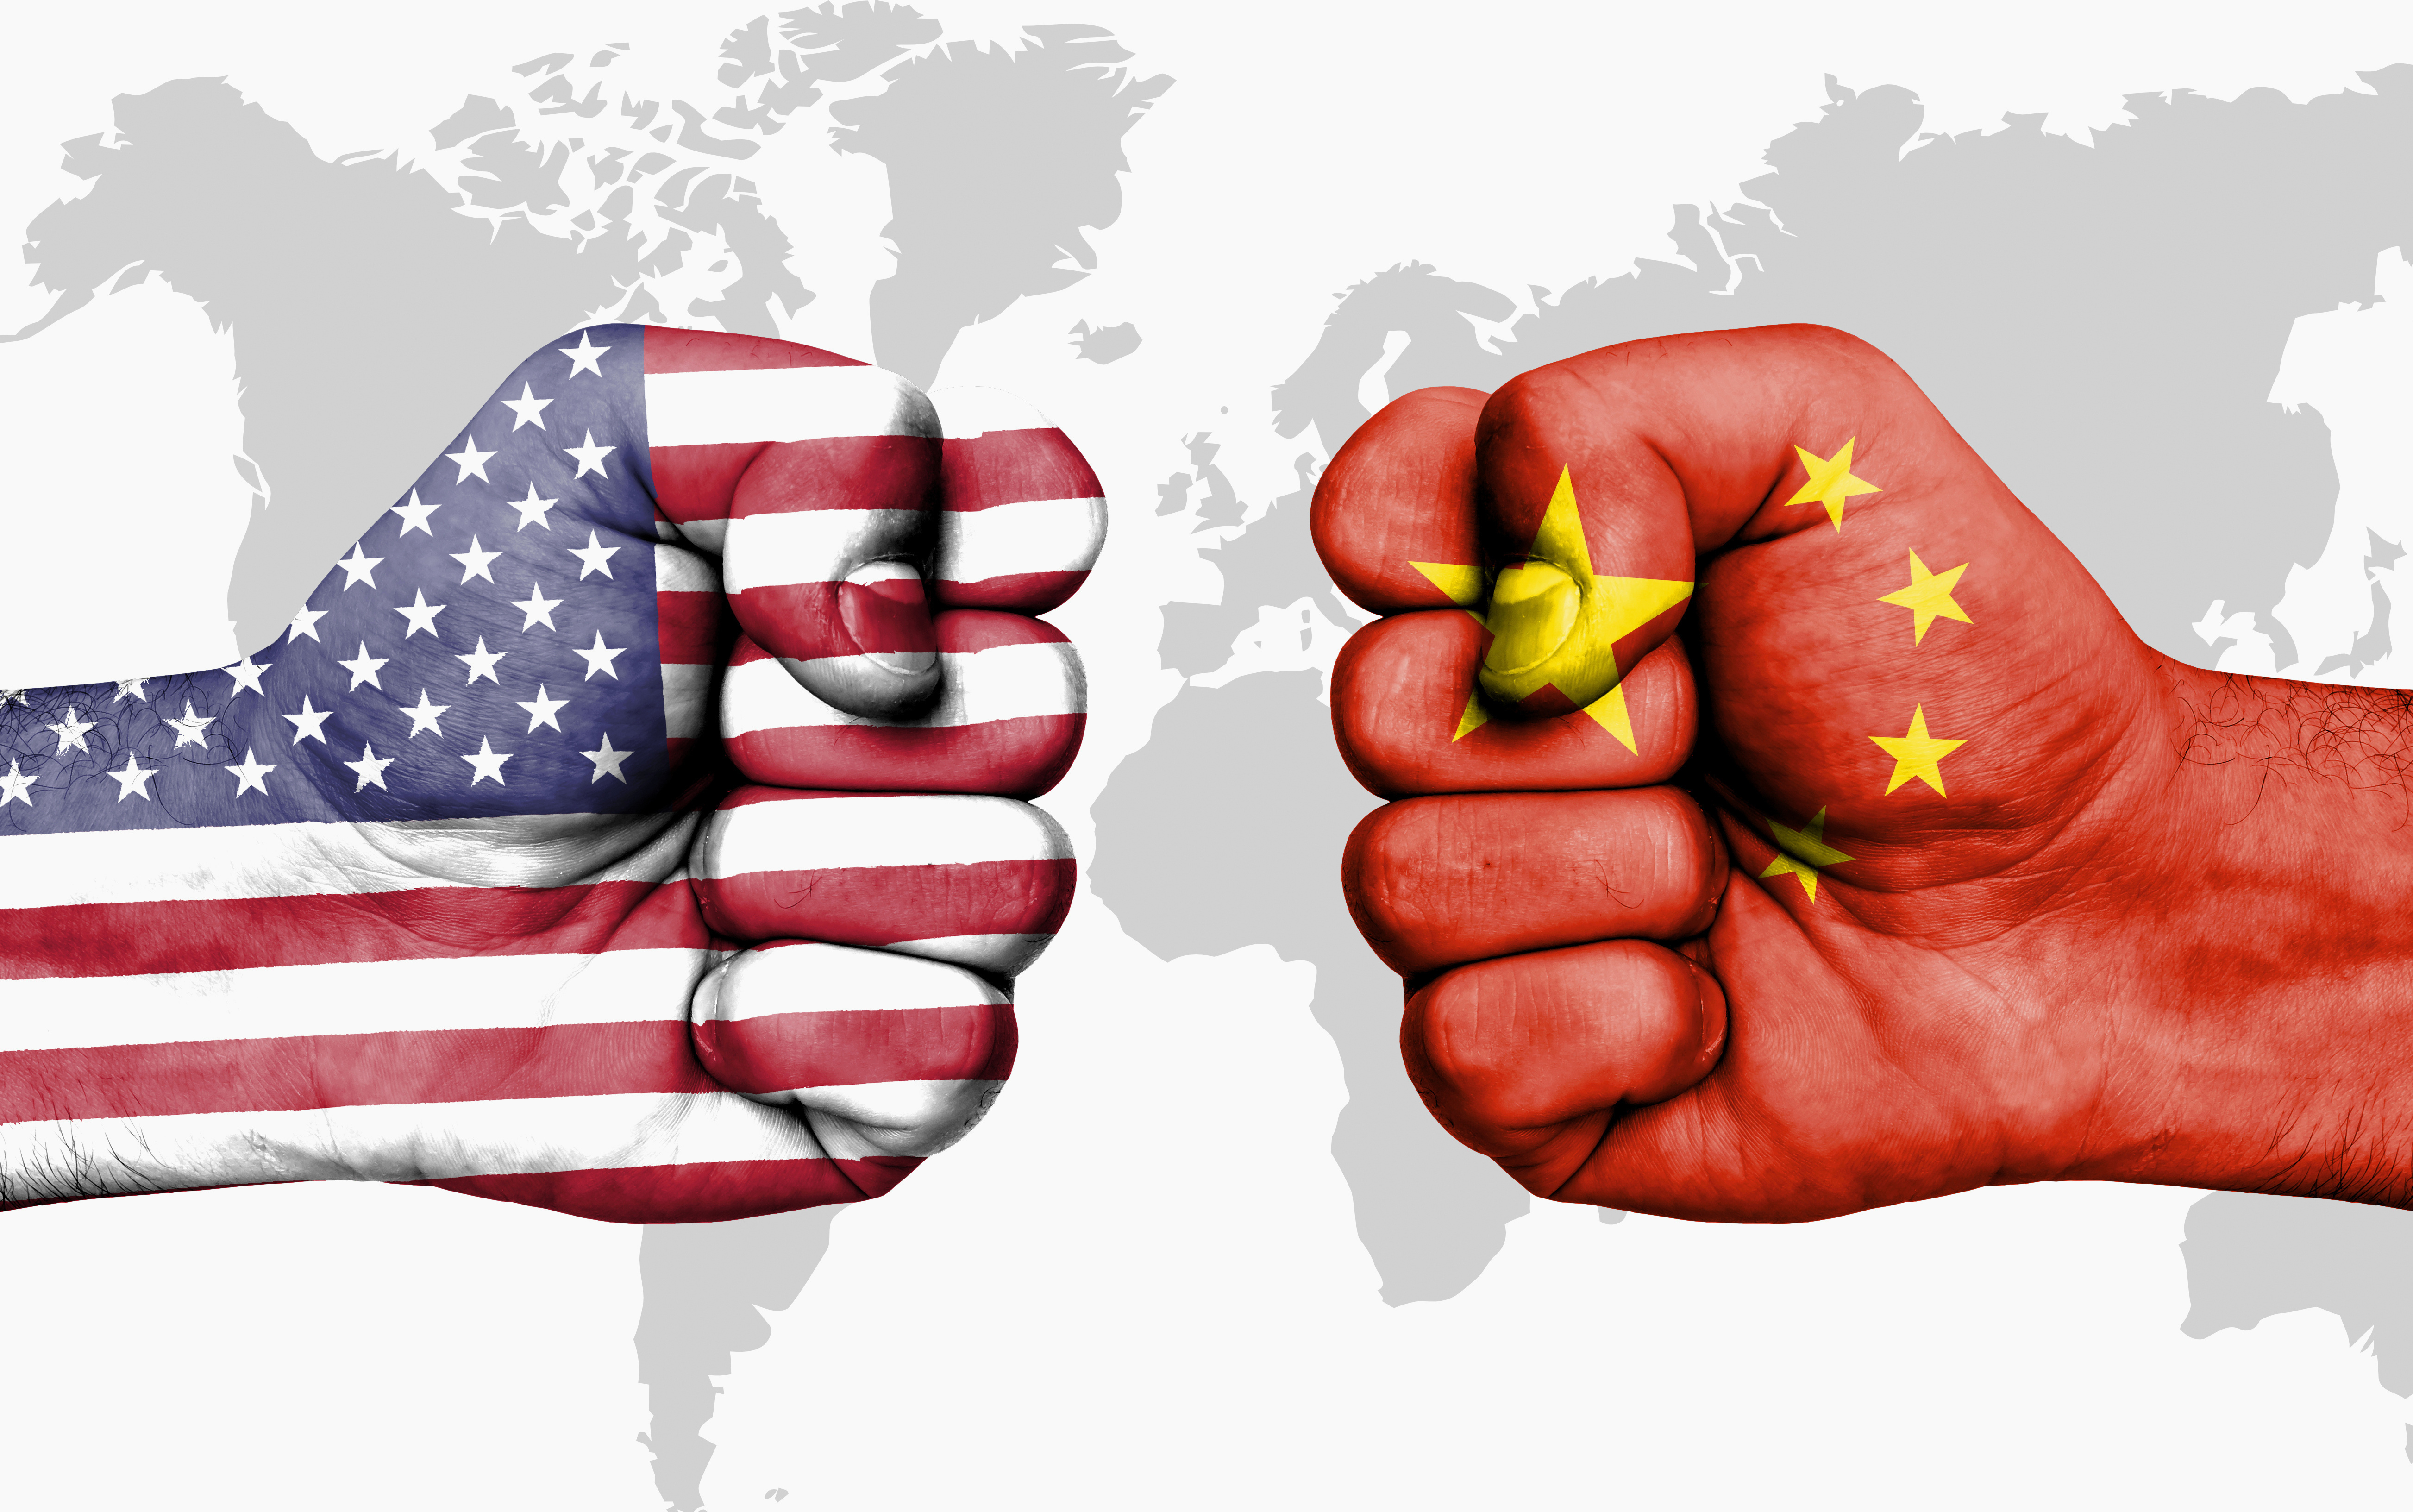 FxPro: Trade wars and protectionism helps cryptocurrency in the long run